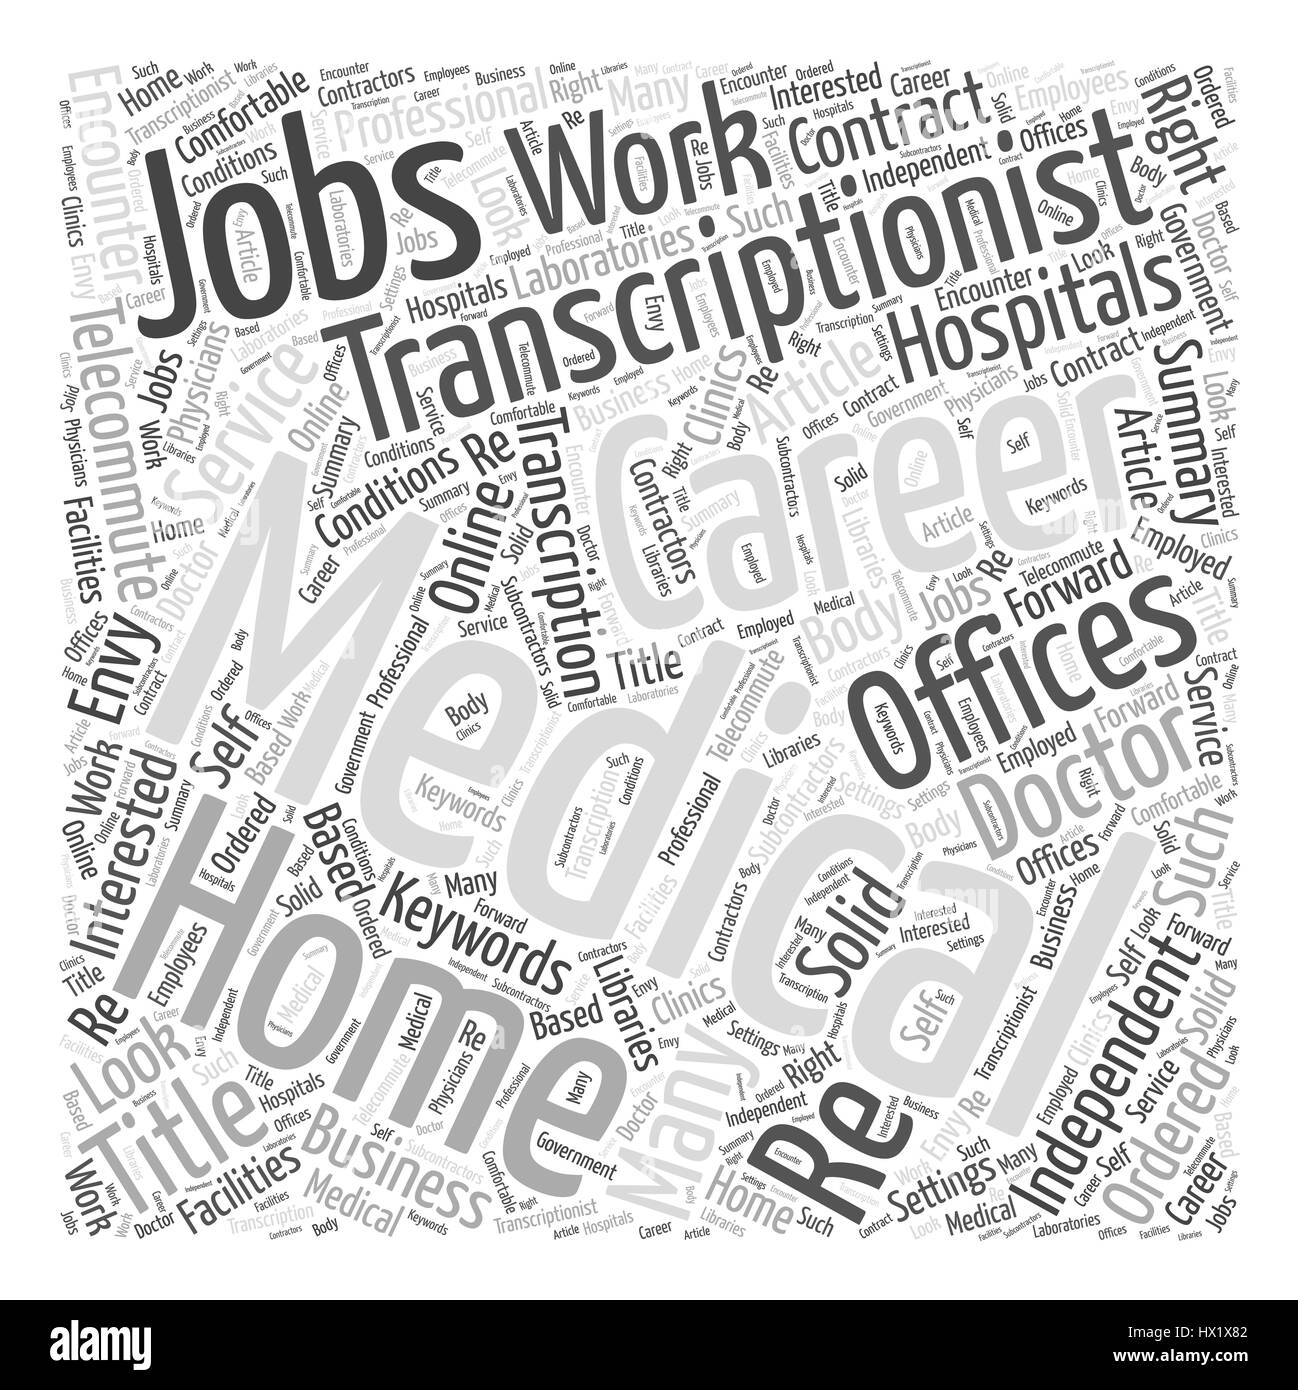 A Medical Transcriptionist Career Could Be Just What The Doctor Ordered Word Cloud Concept - Stock Image